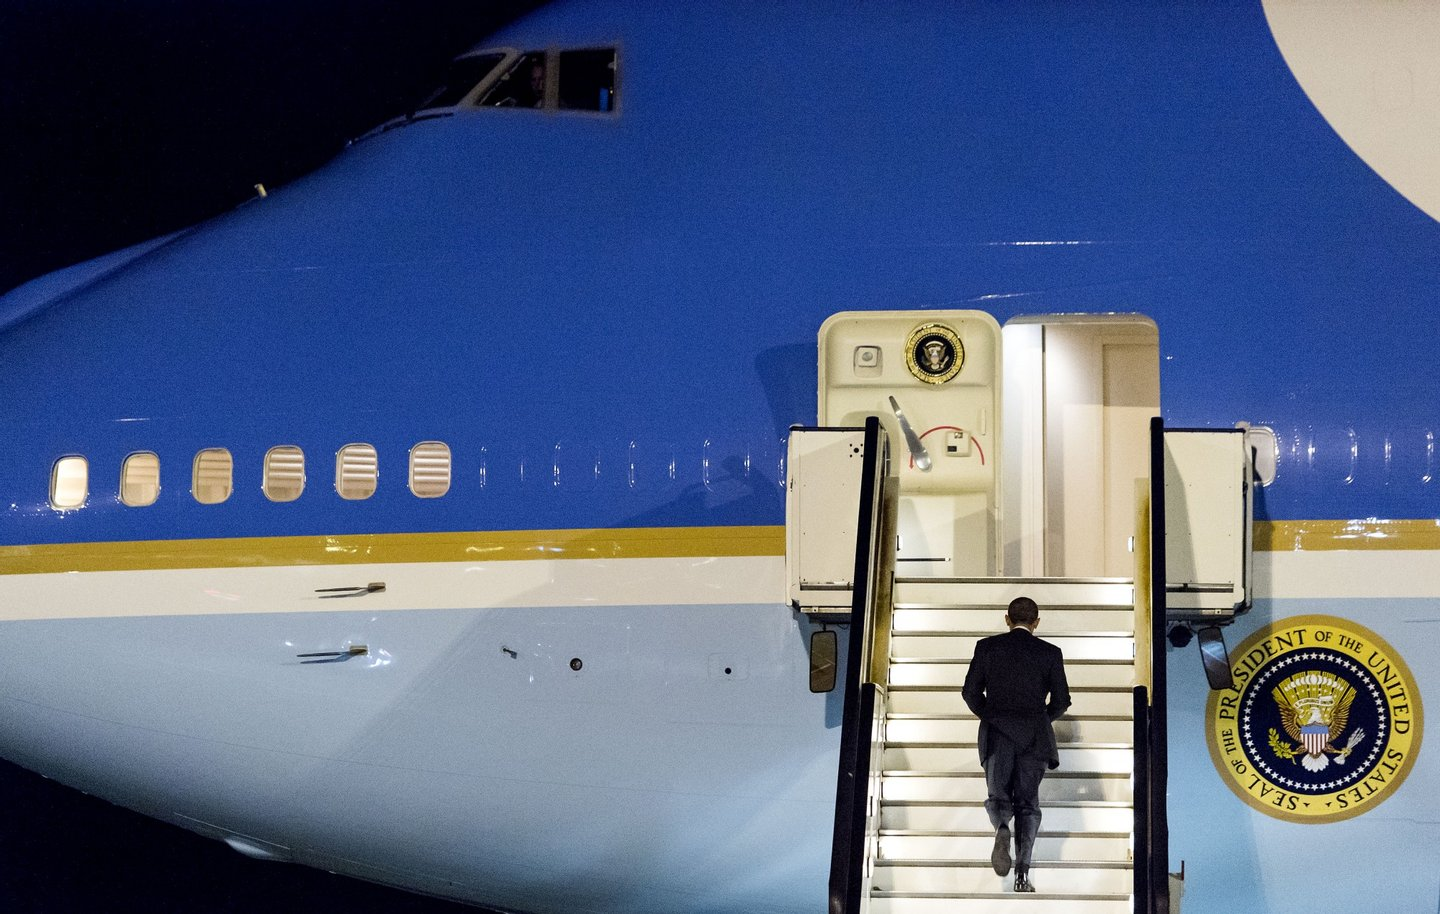 AMSTERDAM, NETHERLANDS - MARCH 25: U.S. President Barack Obama walks up the stairs of Air Force One before leaving Amsterdam Airport Schiphol March 25, 2014 in Amsterdam, Netherlands. Obama attended the two-day Nuclear Security Summit in The Hague. (Photo by Koen Van Weel-Pool/Getty Images)